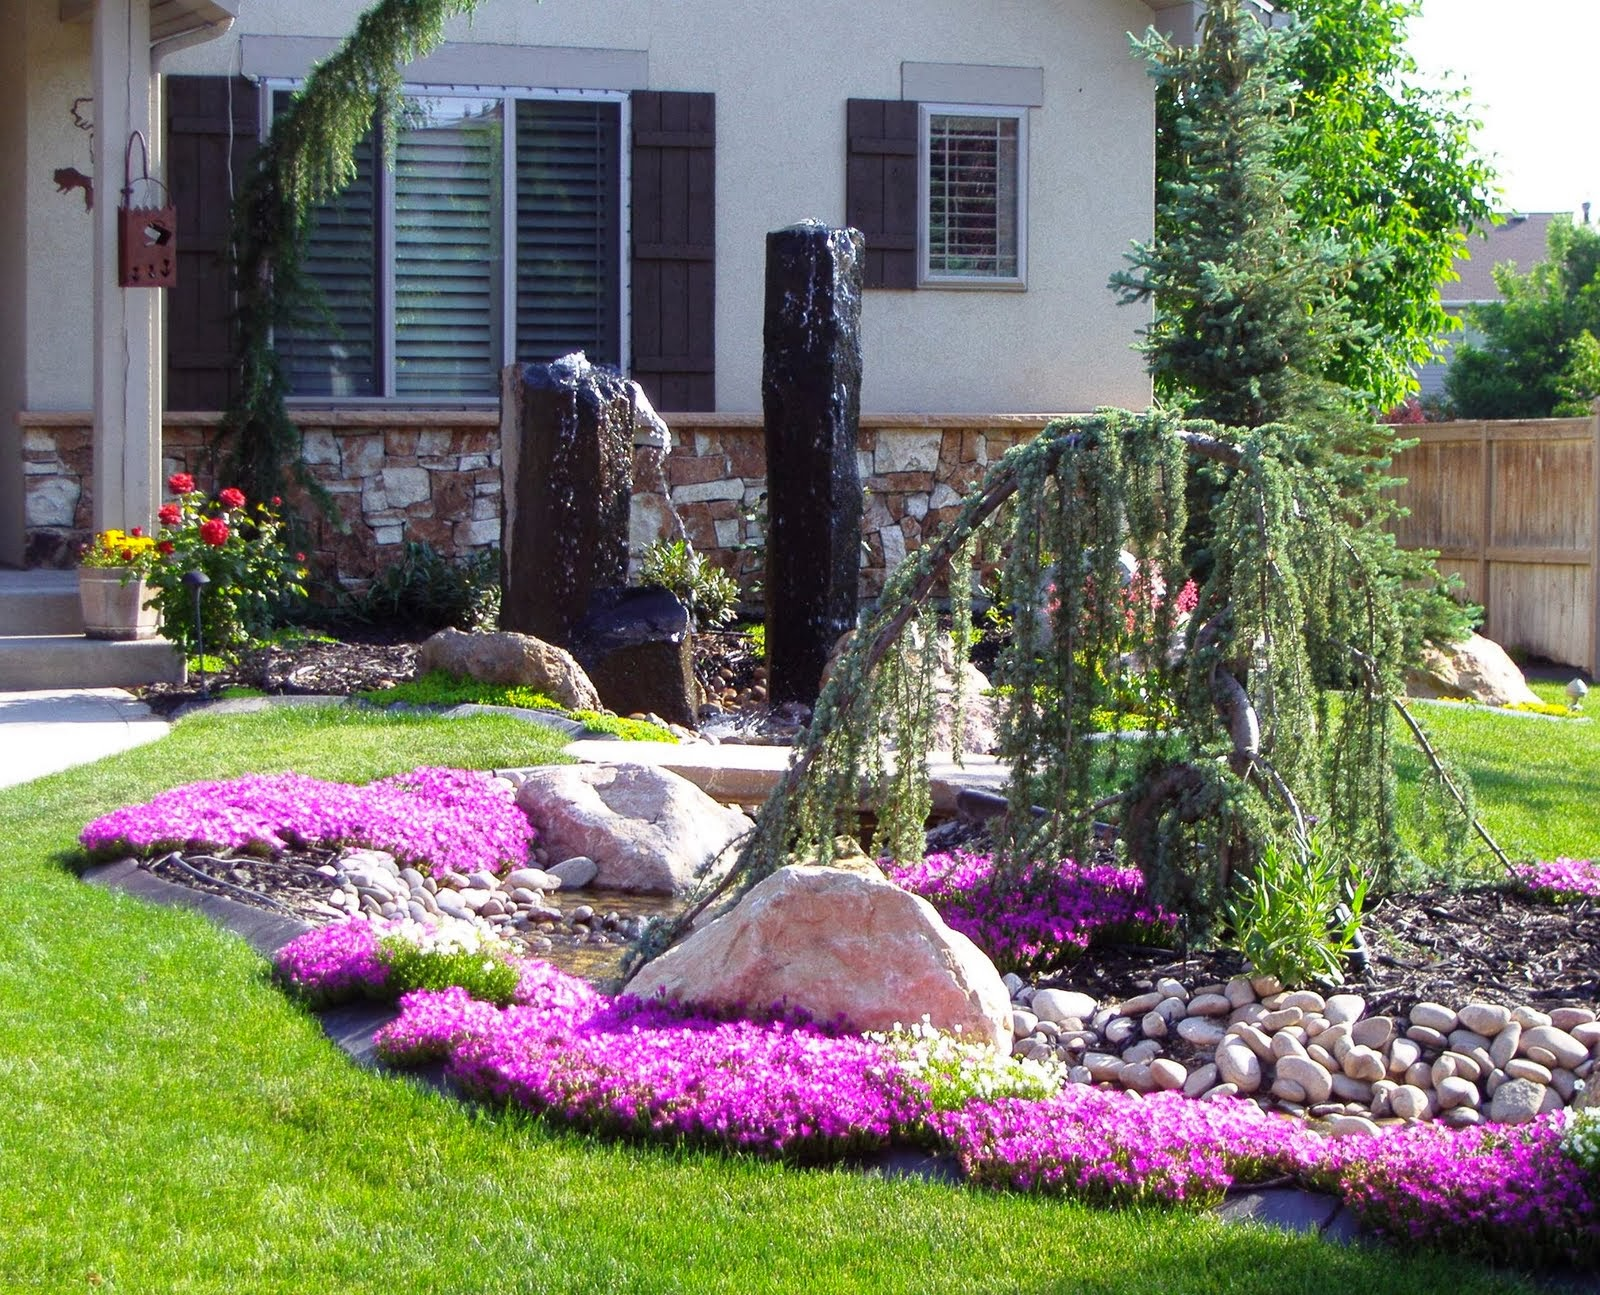 Gardening and Landscaping: Front Yard Landscaping Ideas on Front Yard And Backyard Landscaping Ideas id=68106